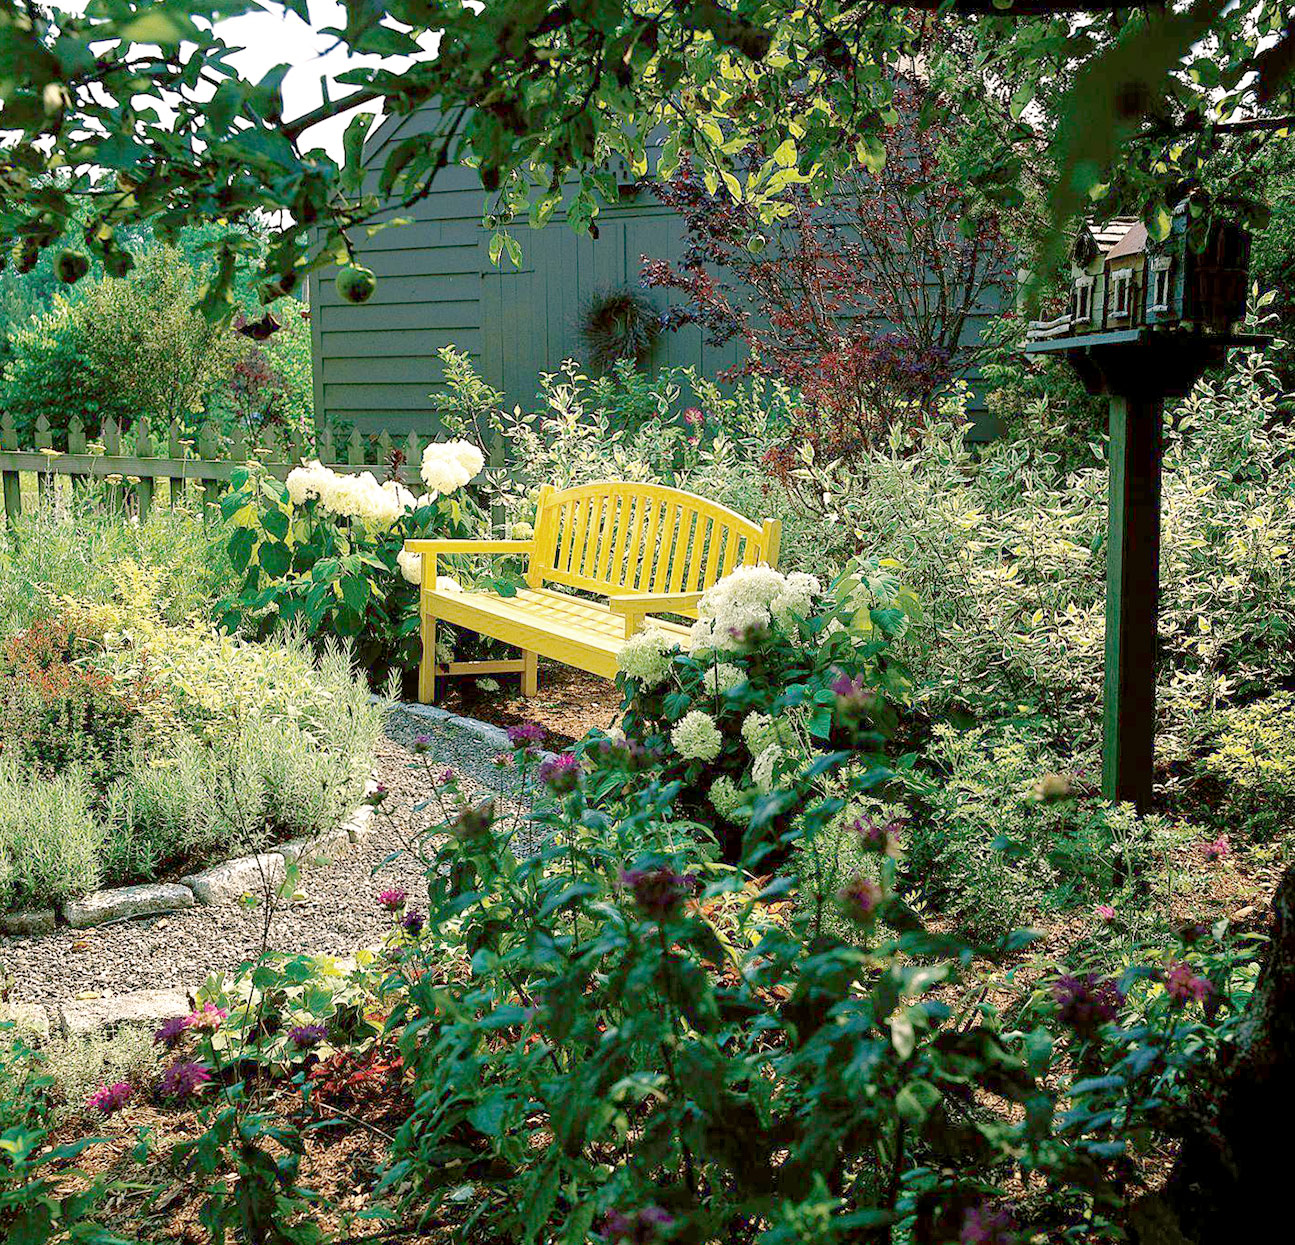 stone edging in garden with yellow bench